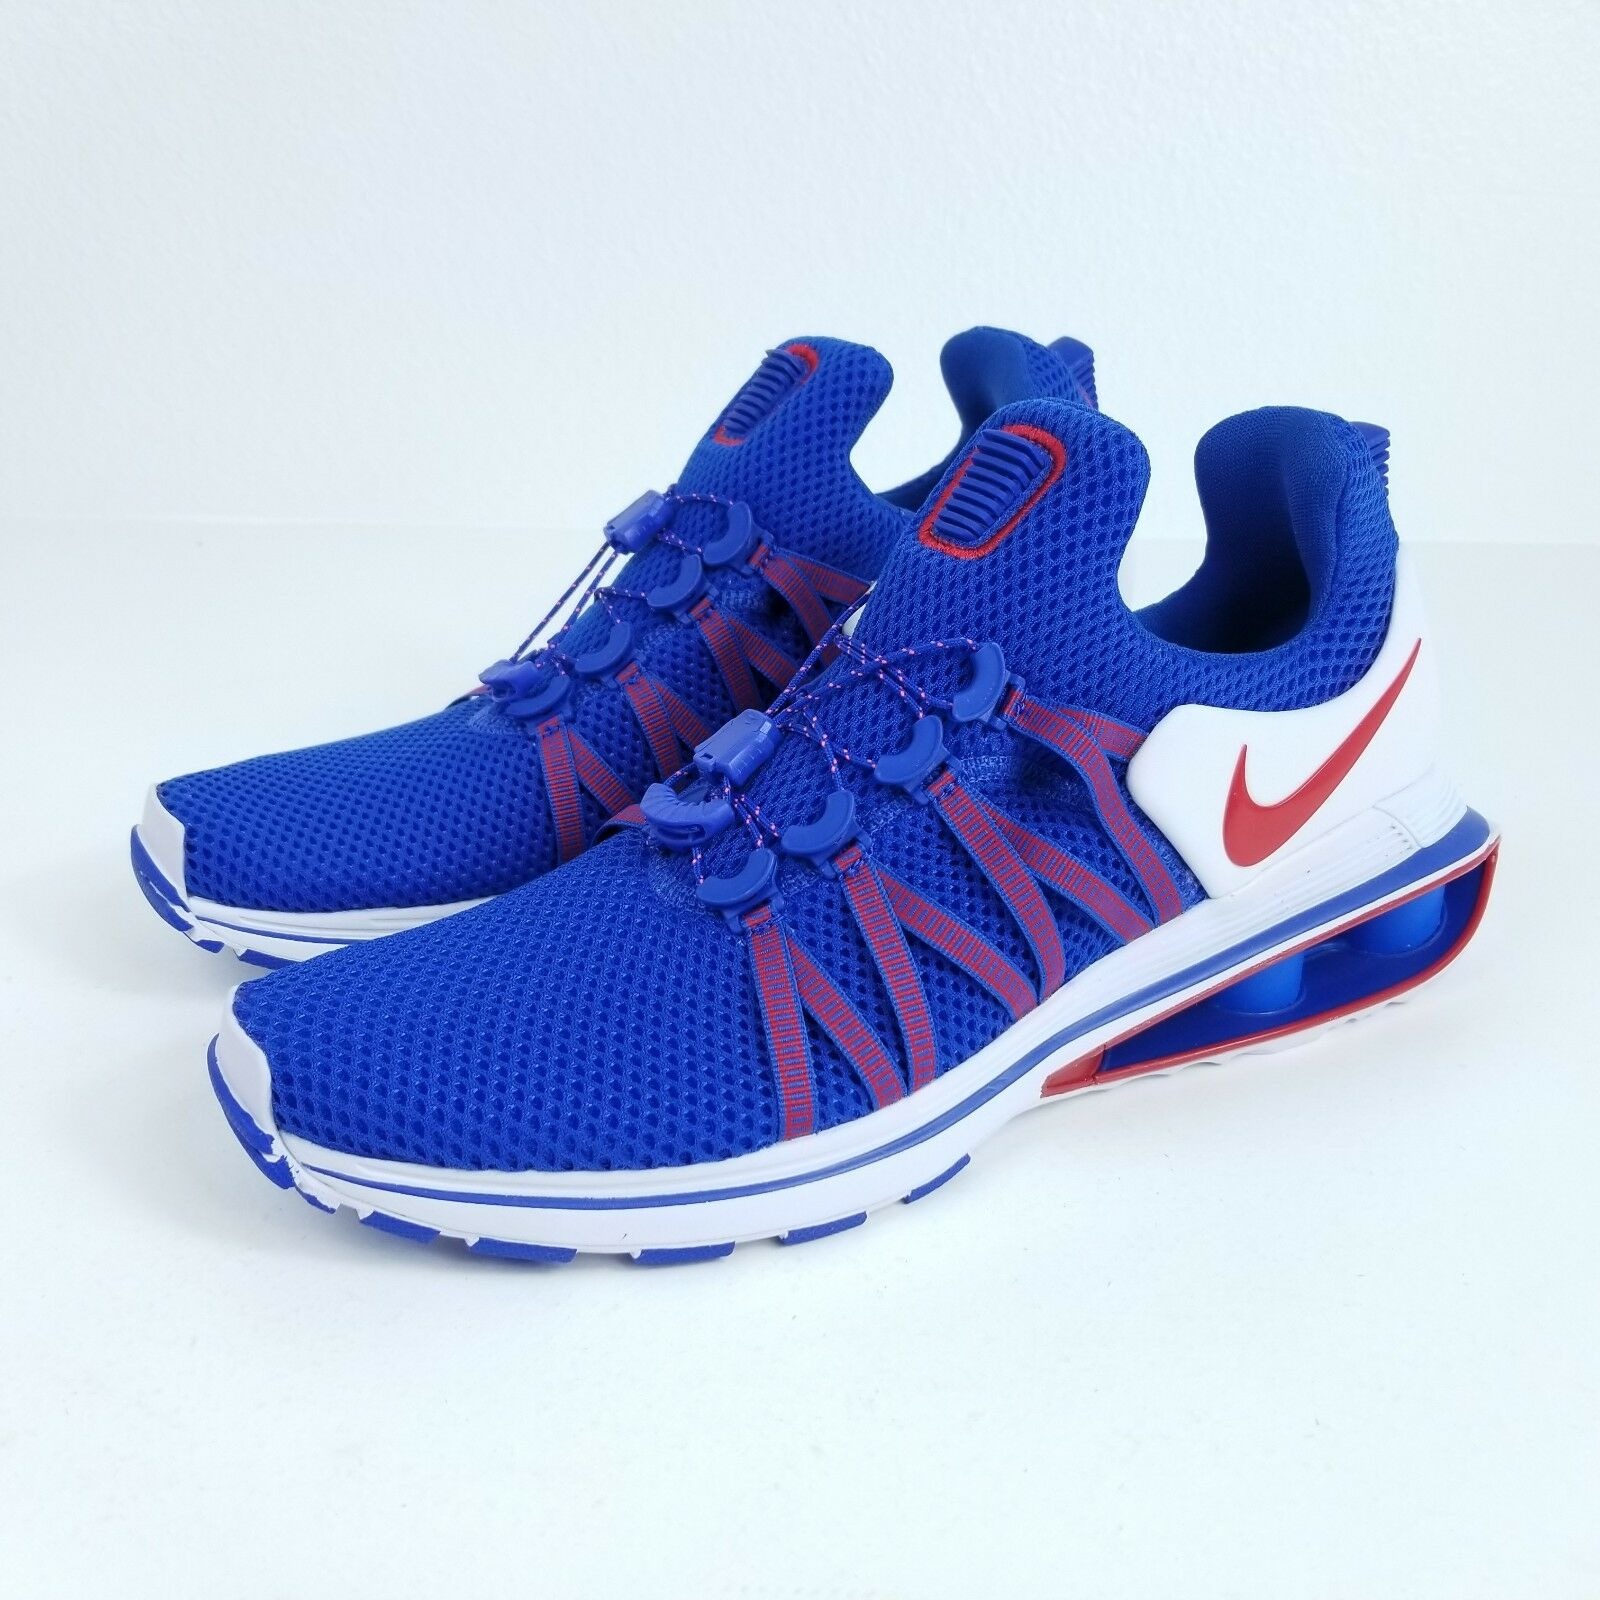 NIKE Shox Gravity Mens Sz 10.5 Shoes Blue Red White AR1999 406 Comfortable and good-looking